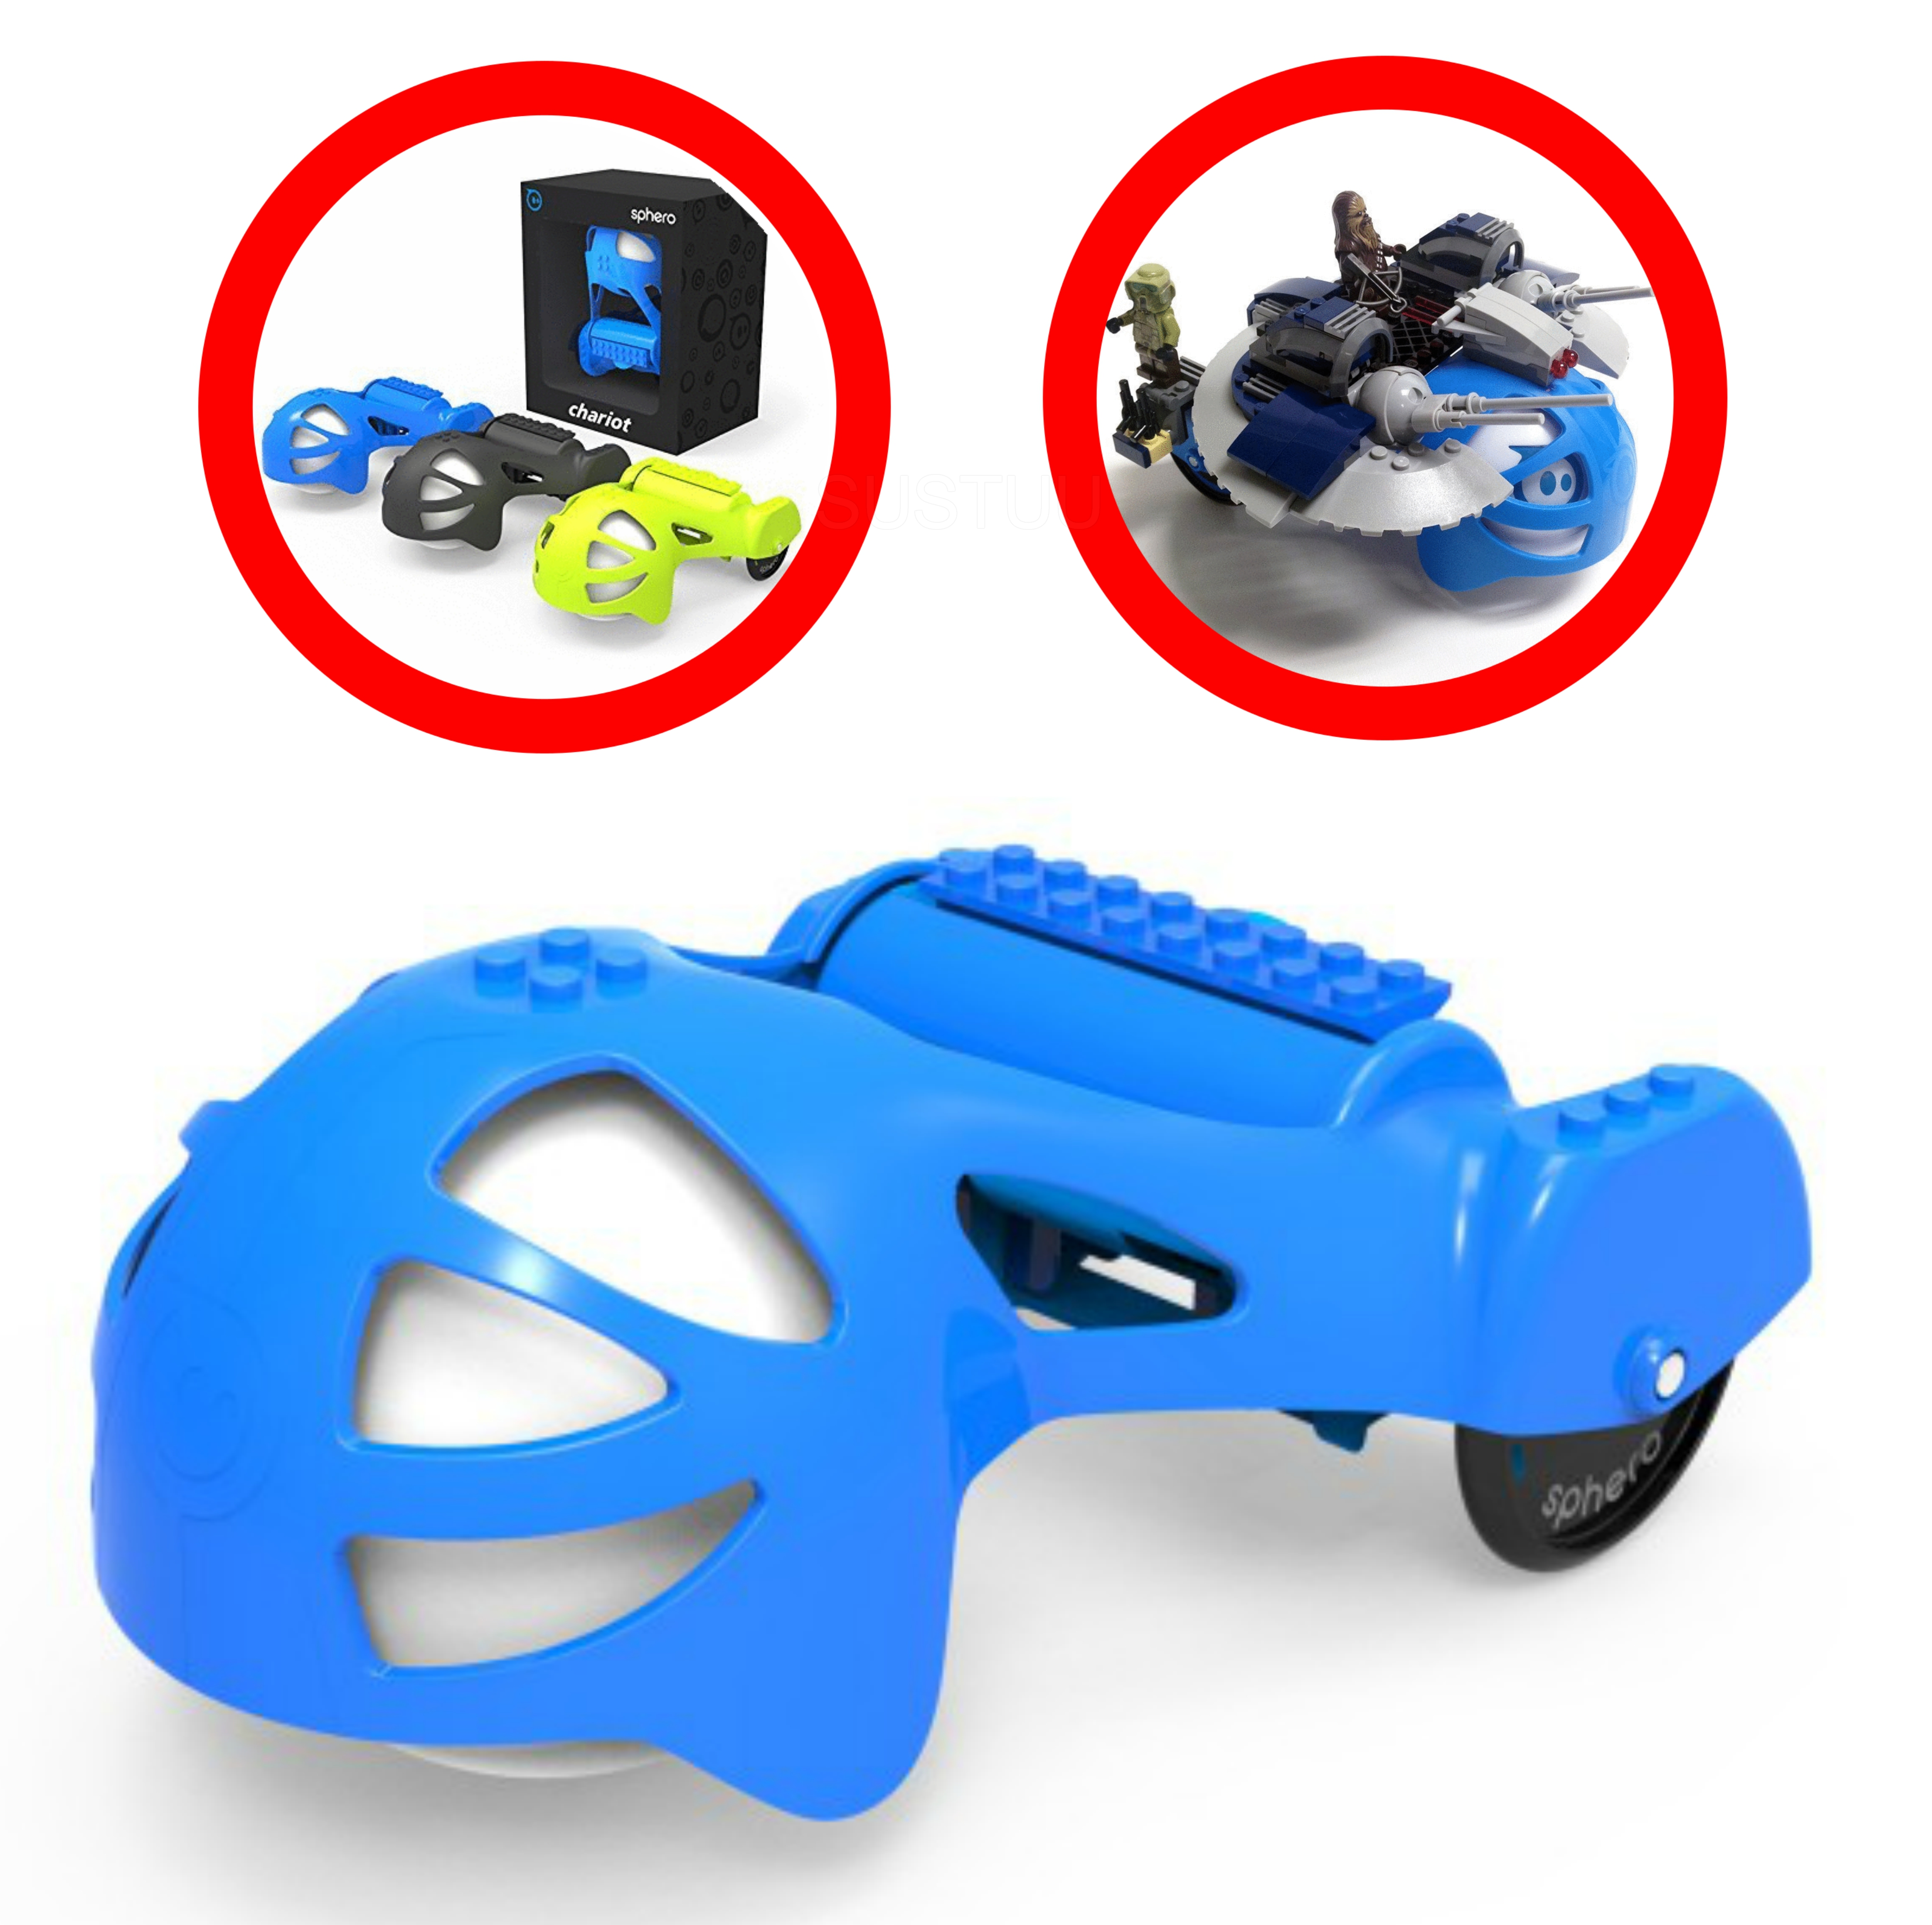 Sphero Chariot Blue|ACH01BU1|Build Own Spy-bot Use with Sphero Orginal & 2.0